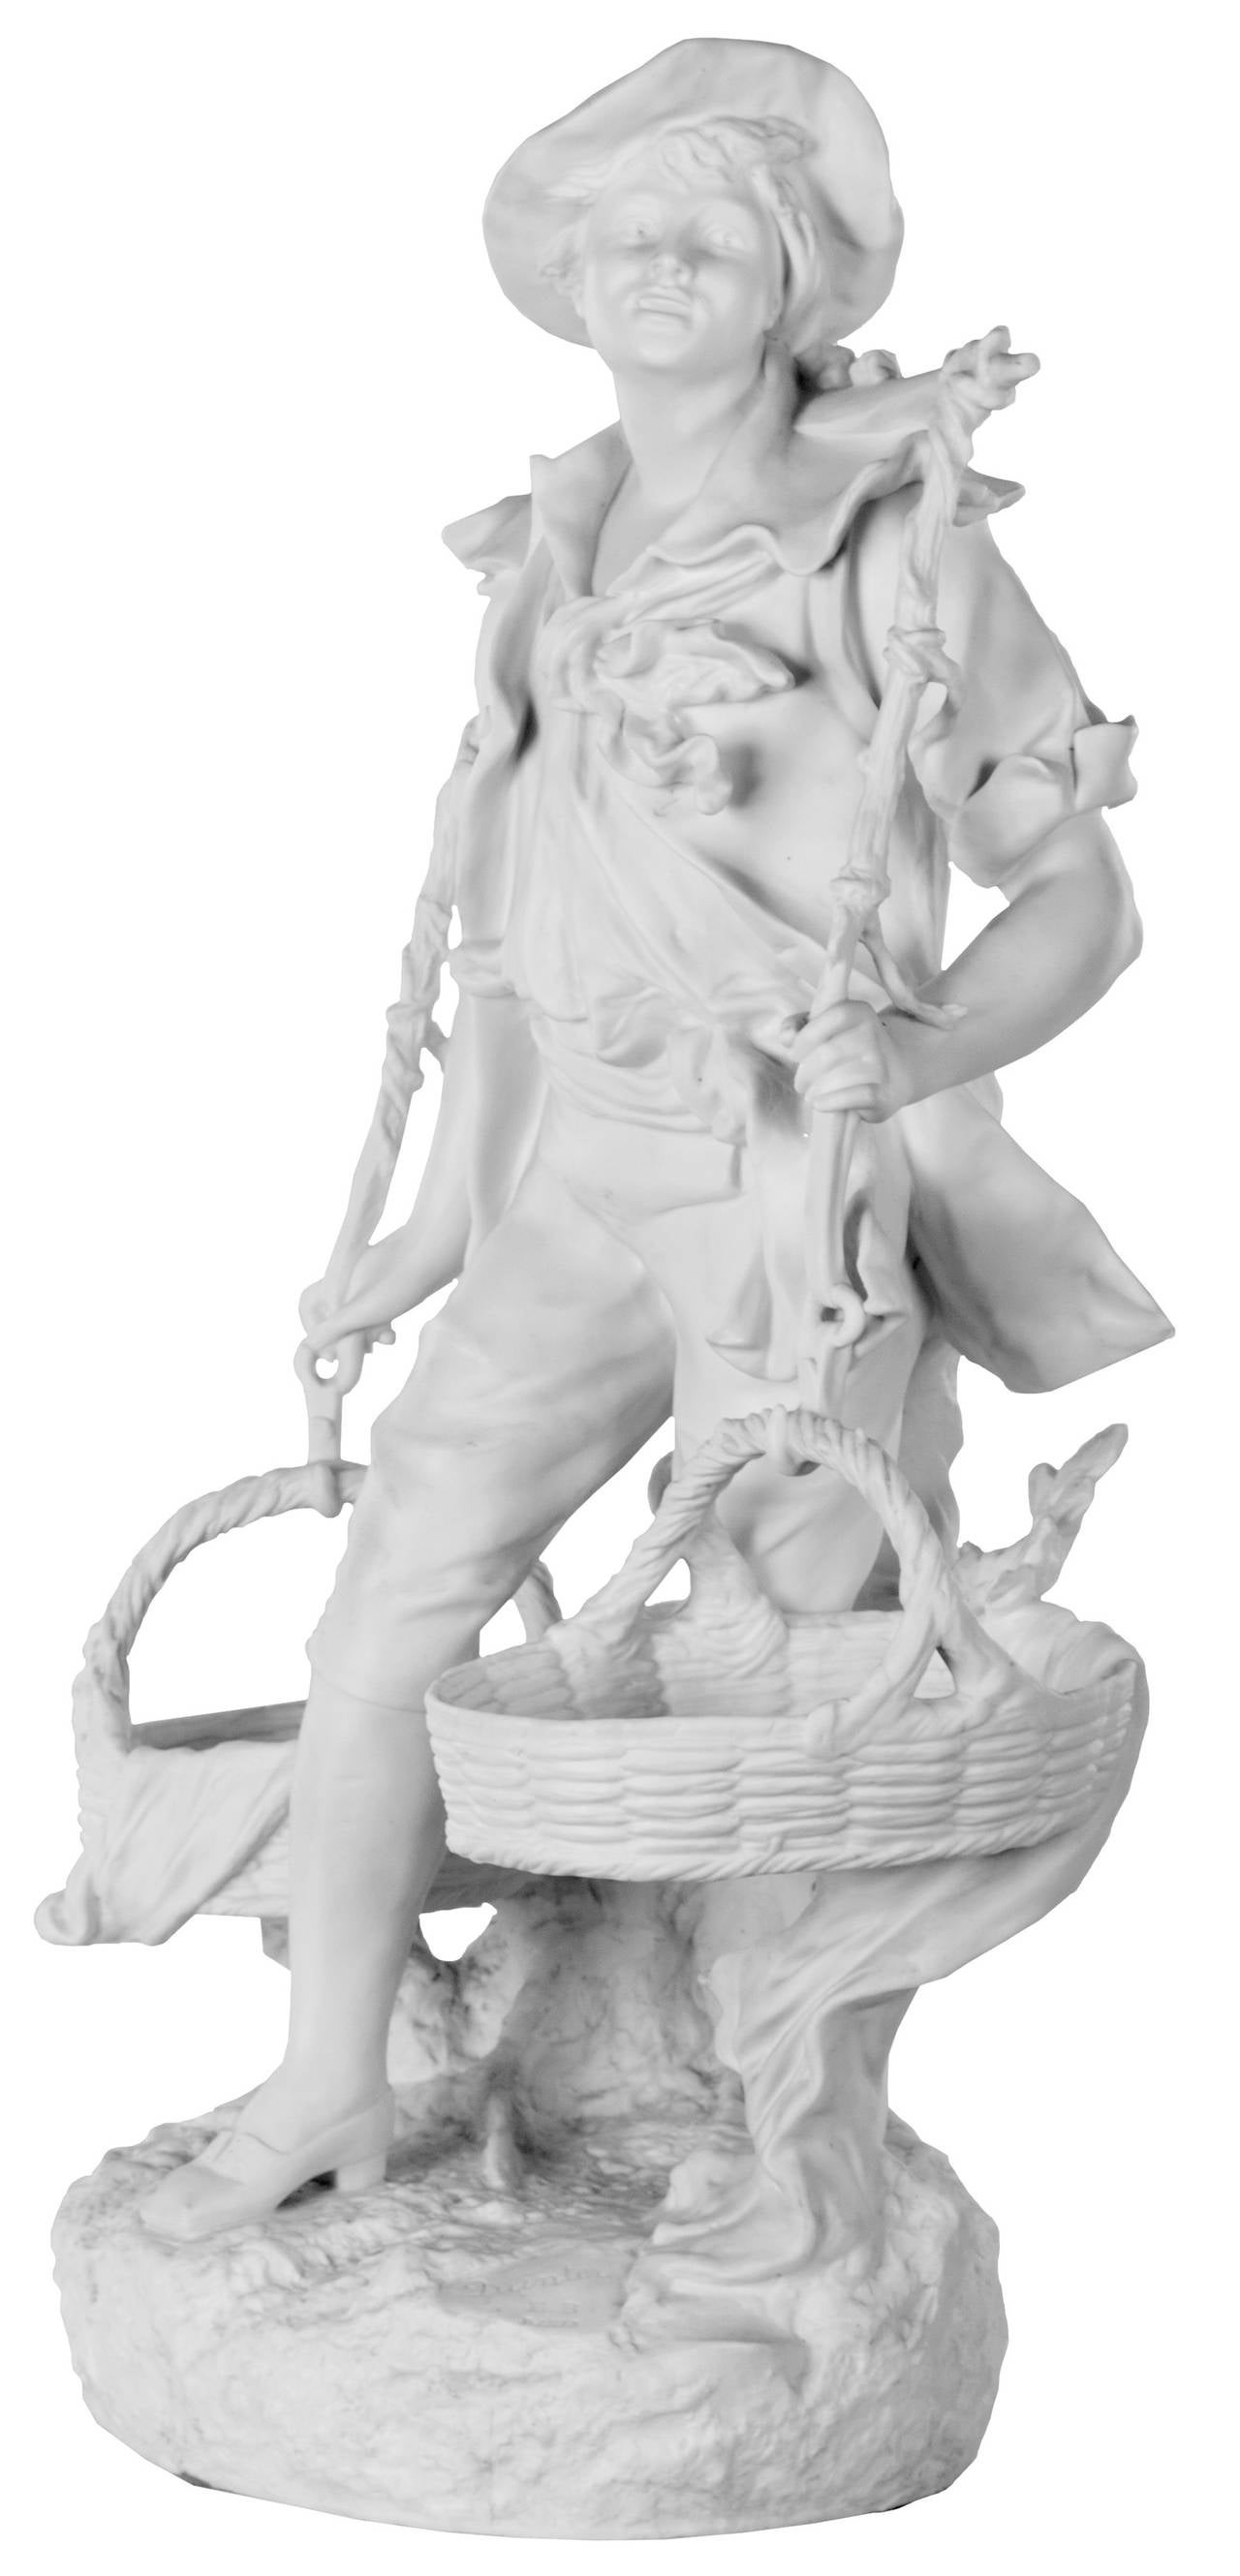 A French bisque porcelain sculpture of a young man carrying a load of two baskets traditionally used in harvesting grapes. The figure is dressed in Provincial, early-19th century costume and modeled with remarkable skill and confidence. Signed